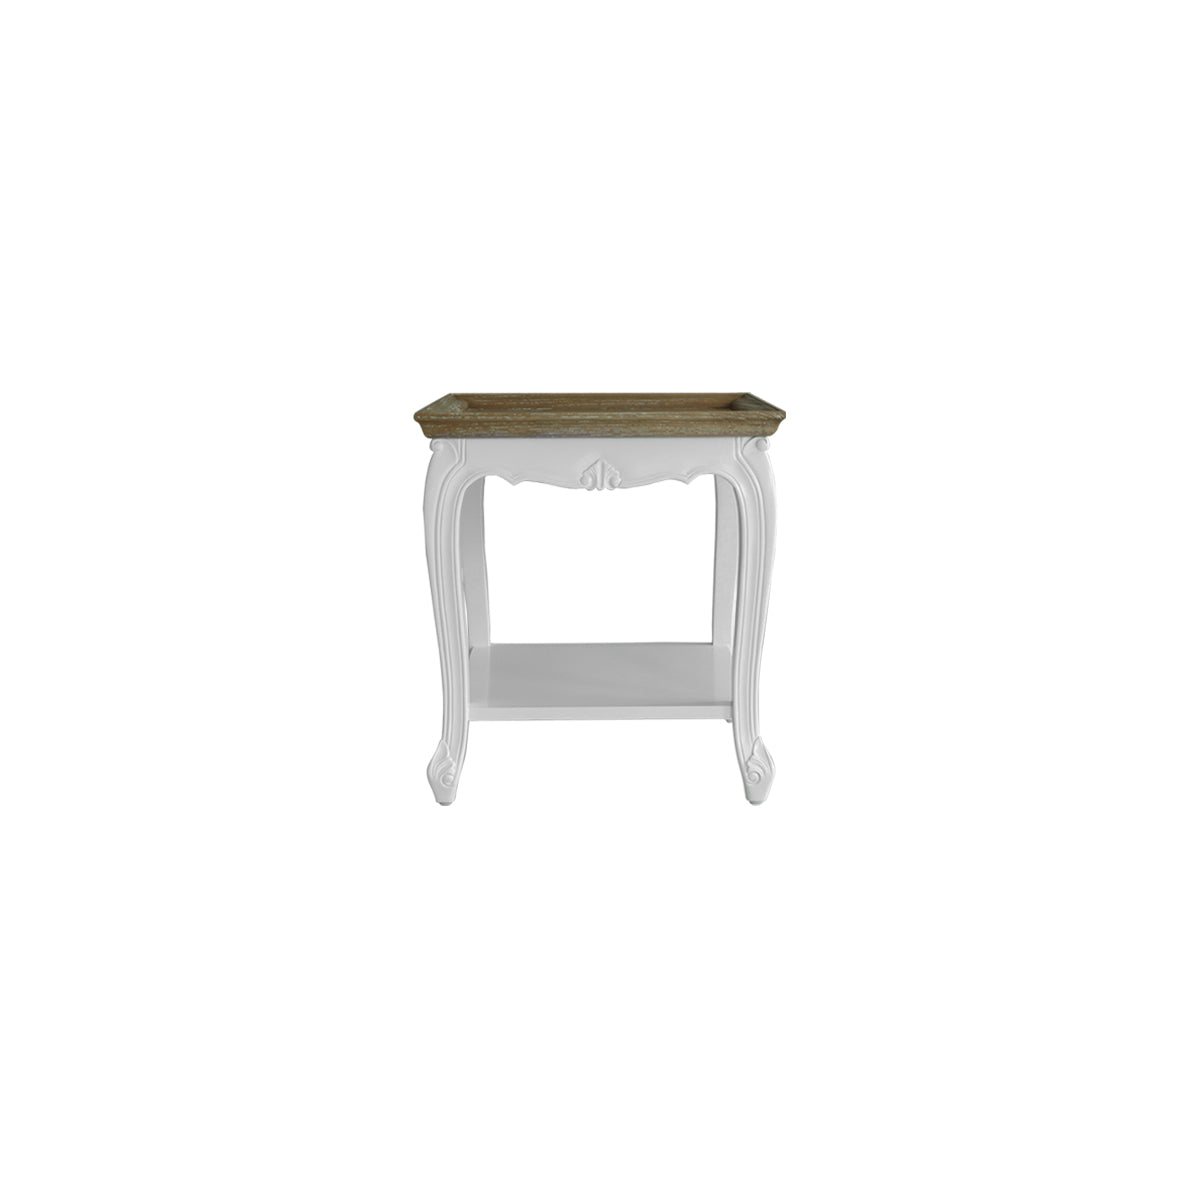 wood furniture square side table meja curvy legs